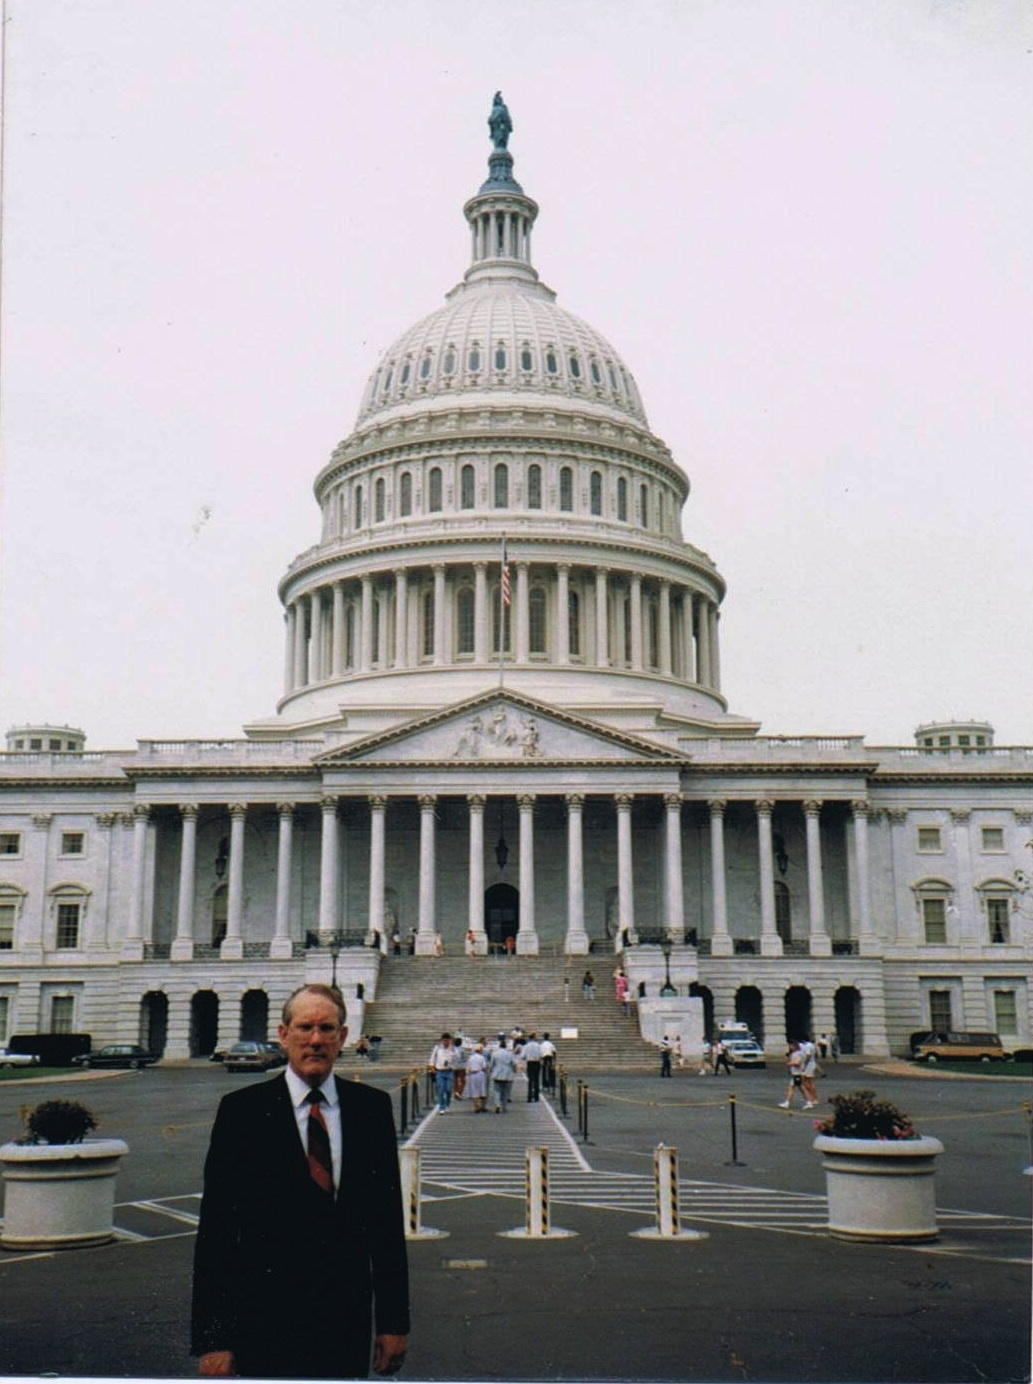 Image of Charles in Washington.